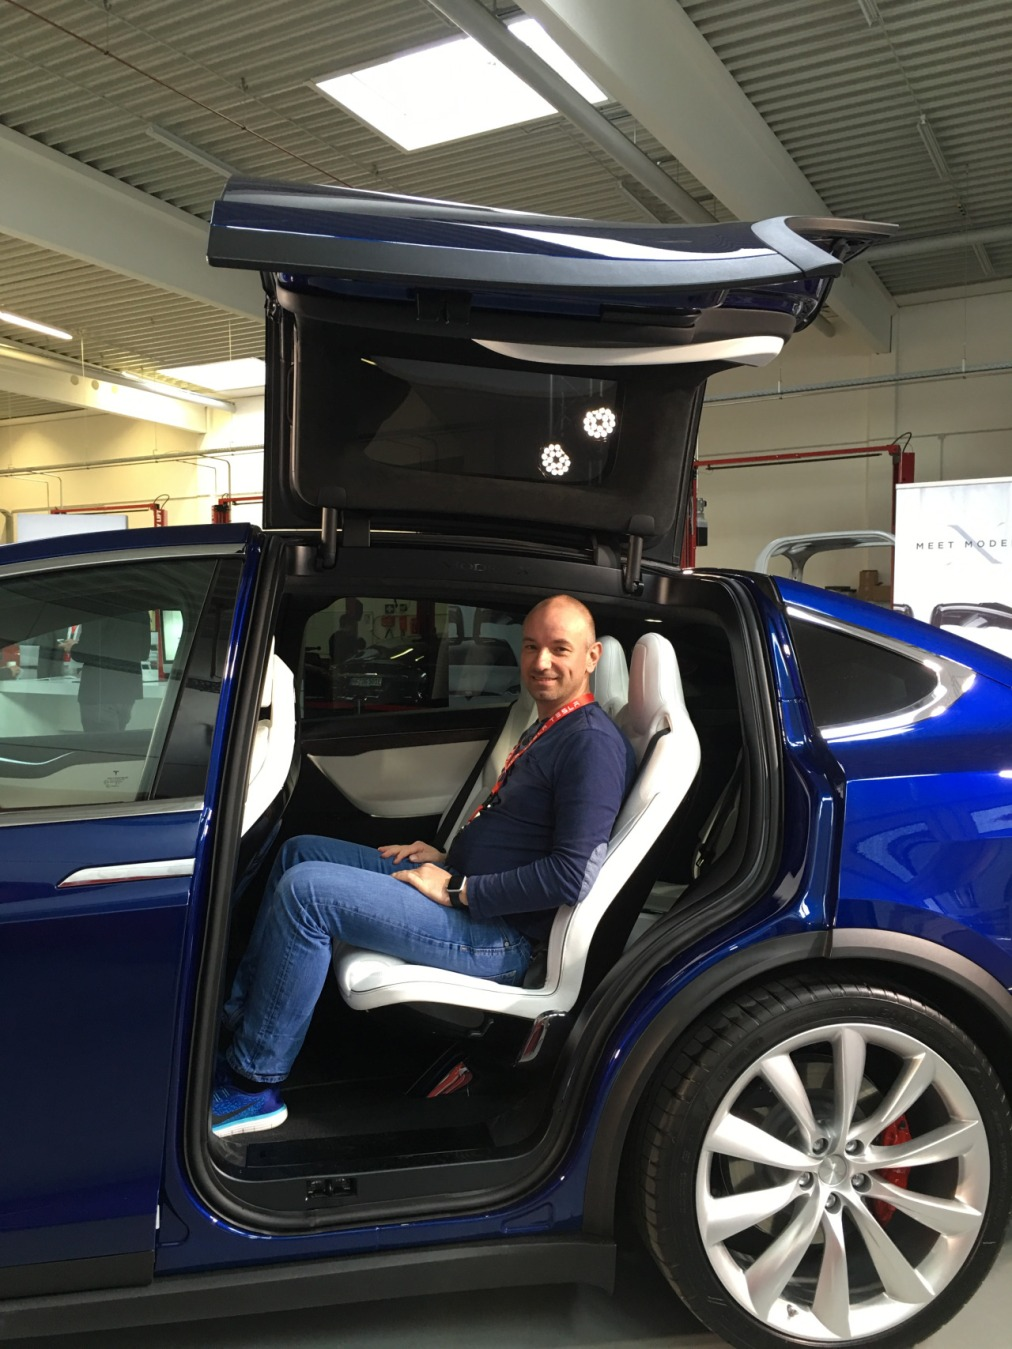 Tesla Model X: Road Trip With My Son